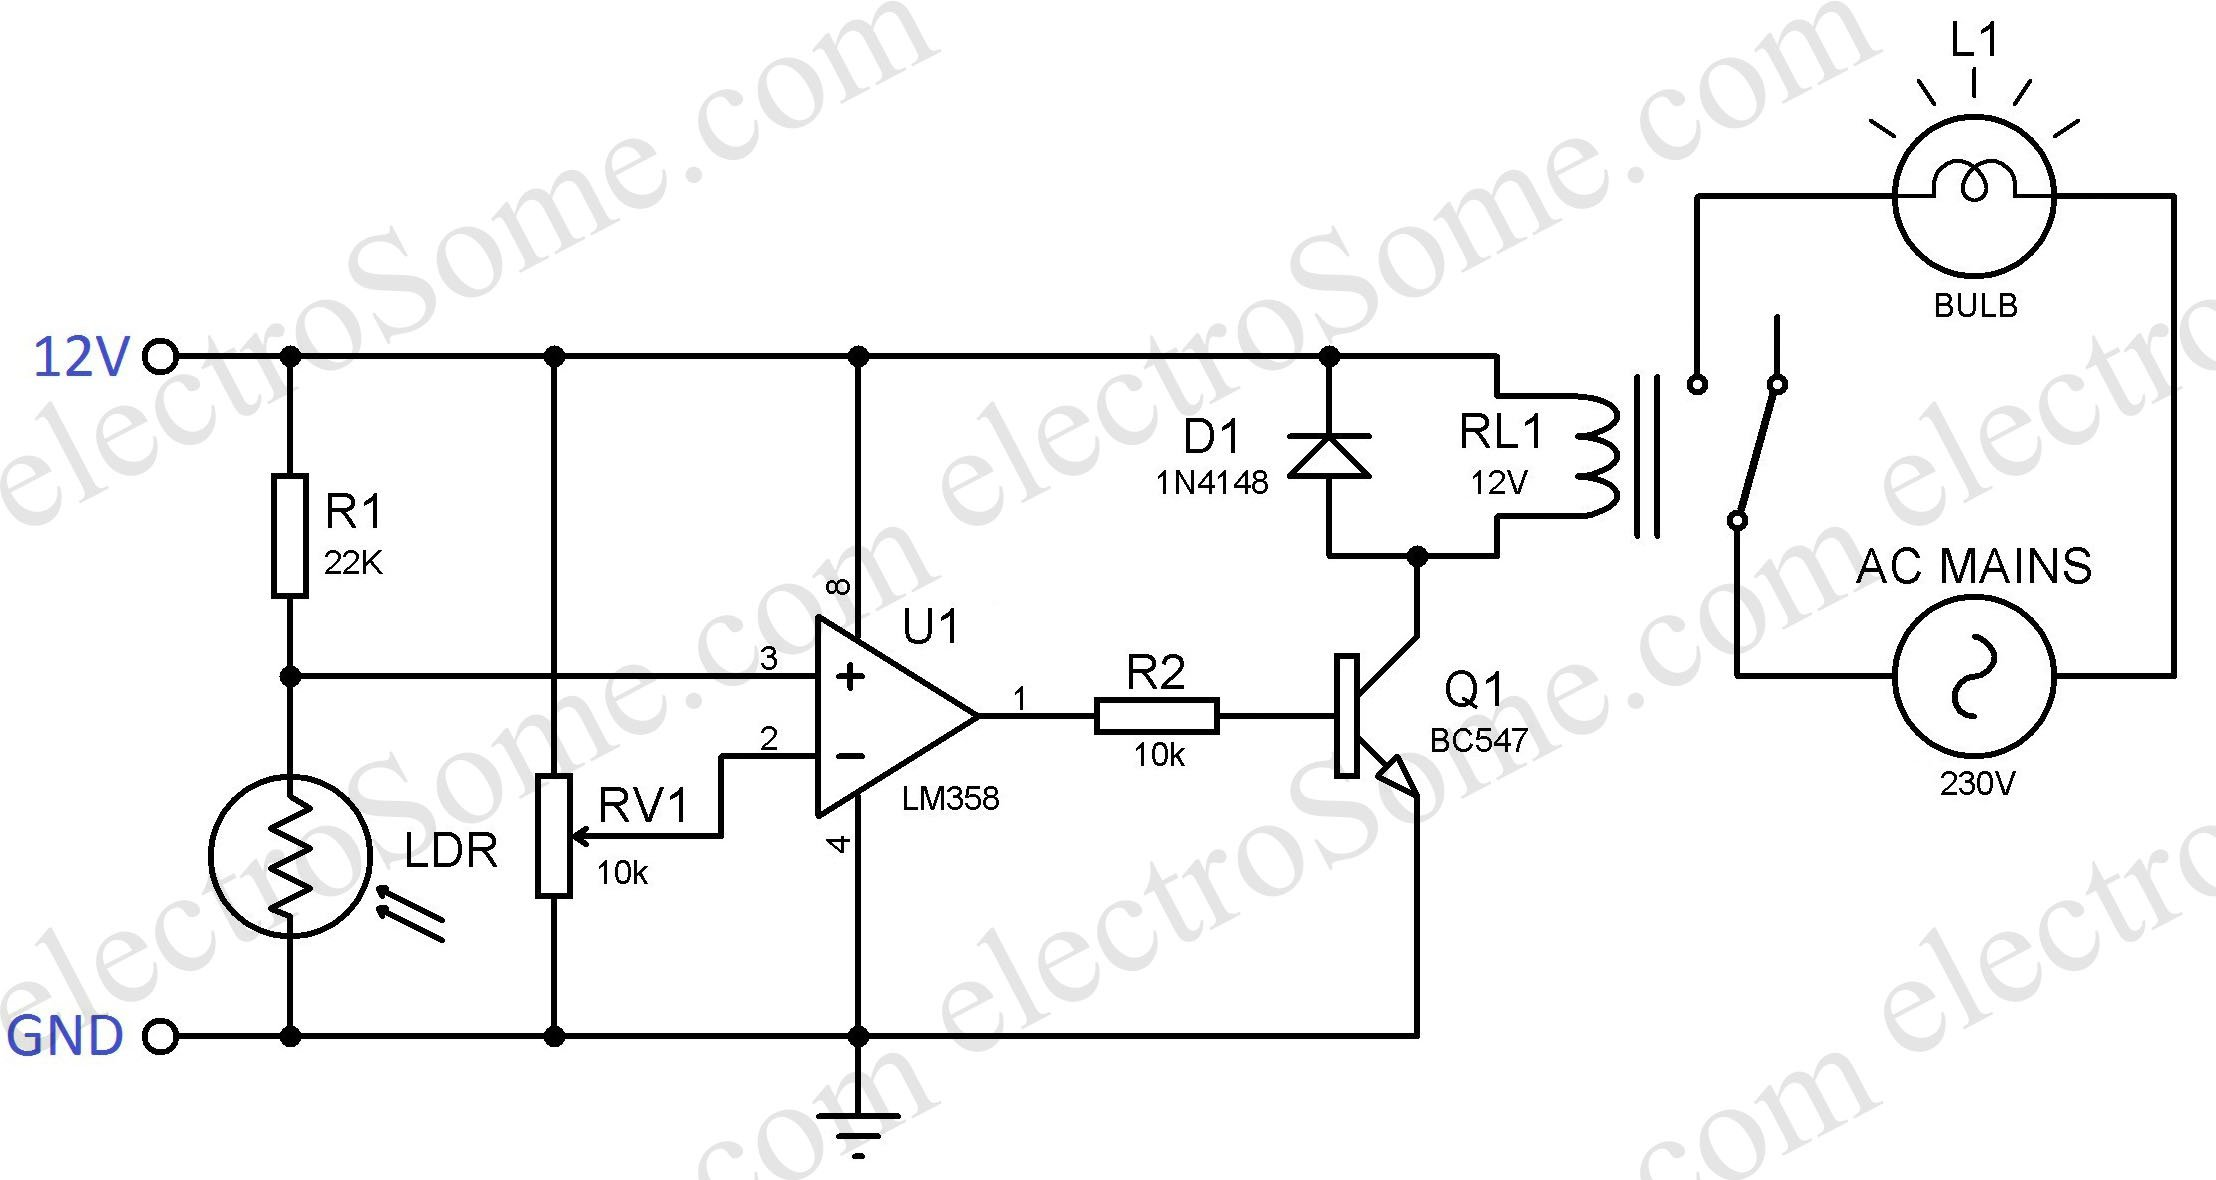 Automatic Night Lamp Using Ldr Comparator Circuits Examples Tutorial Circuit Diagram